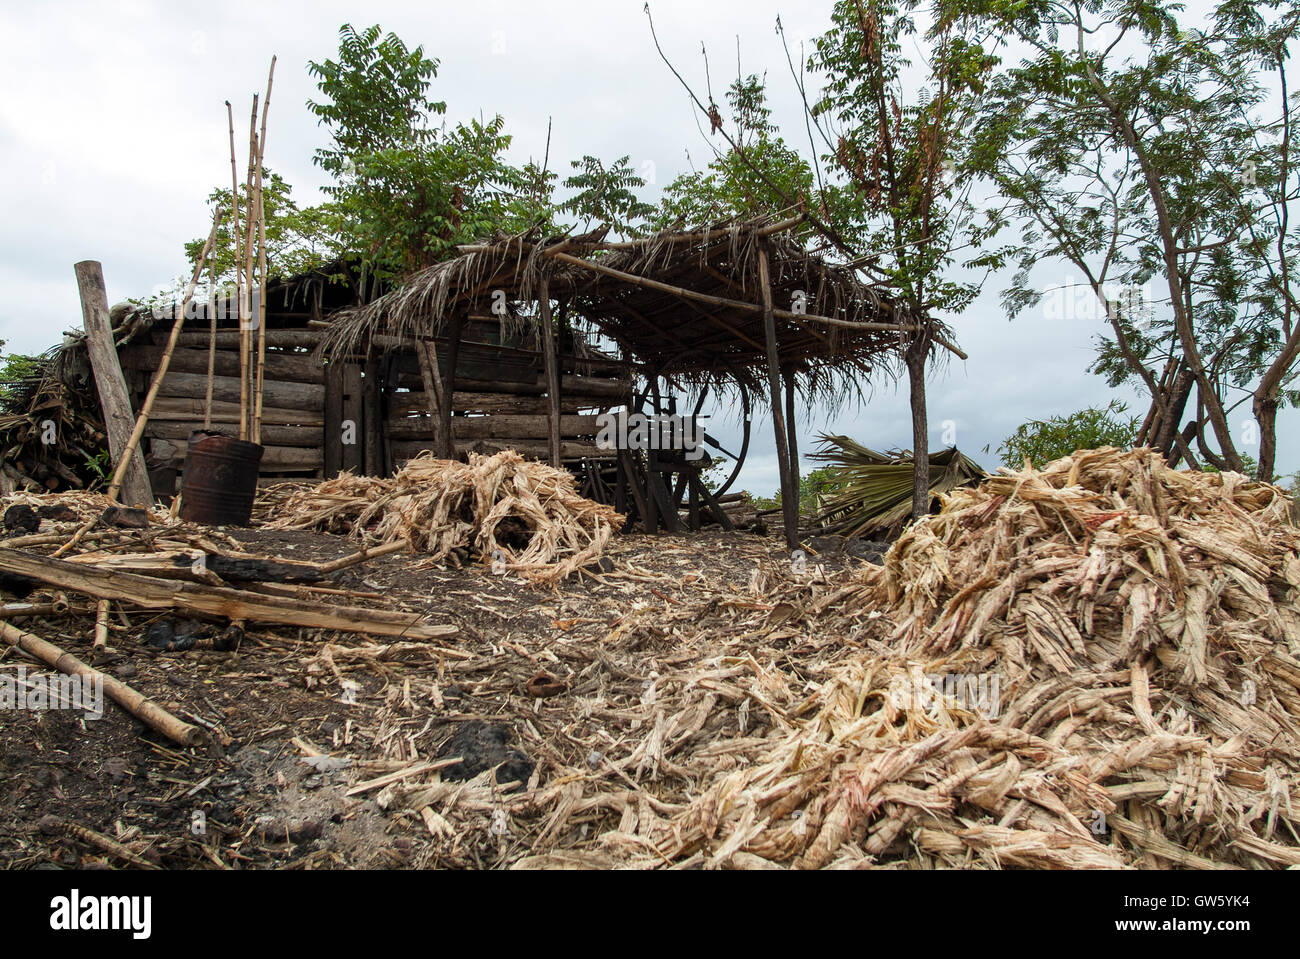 Sugar cane remains after being pressed to remove juice. São Tomé e Príncipe - Stock Image